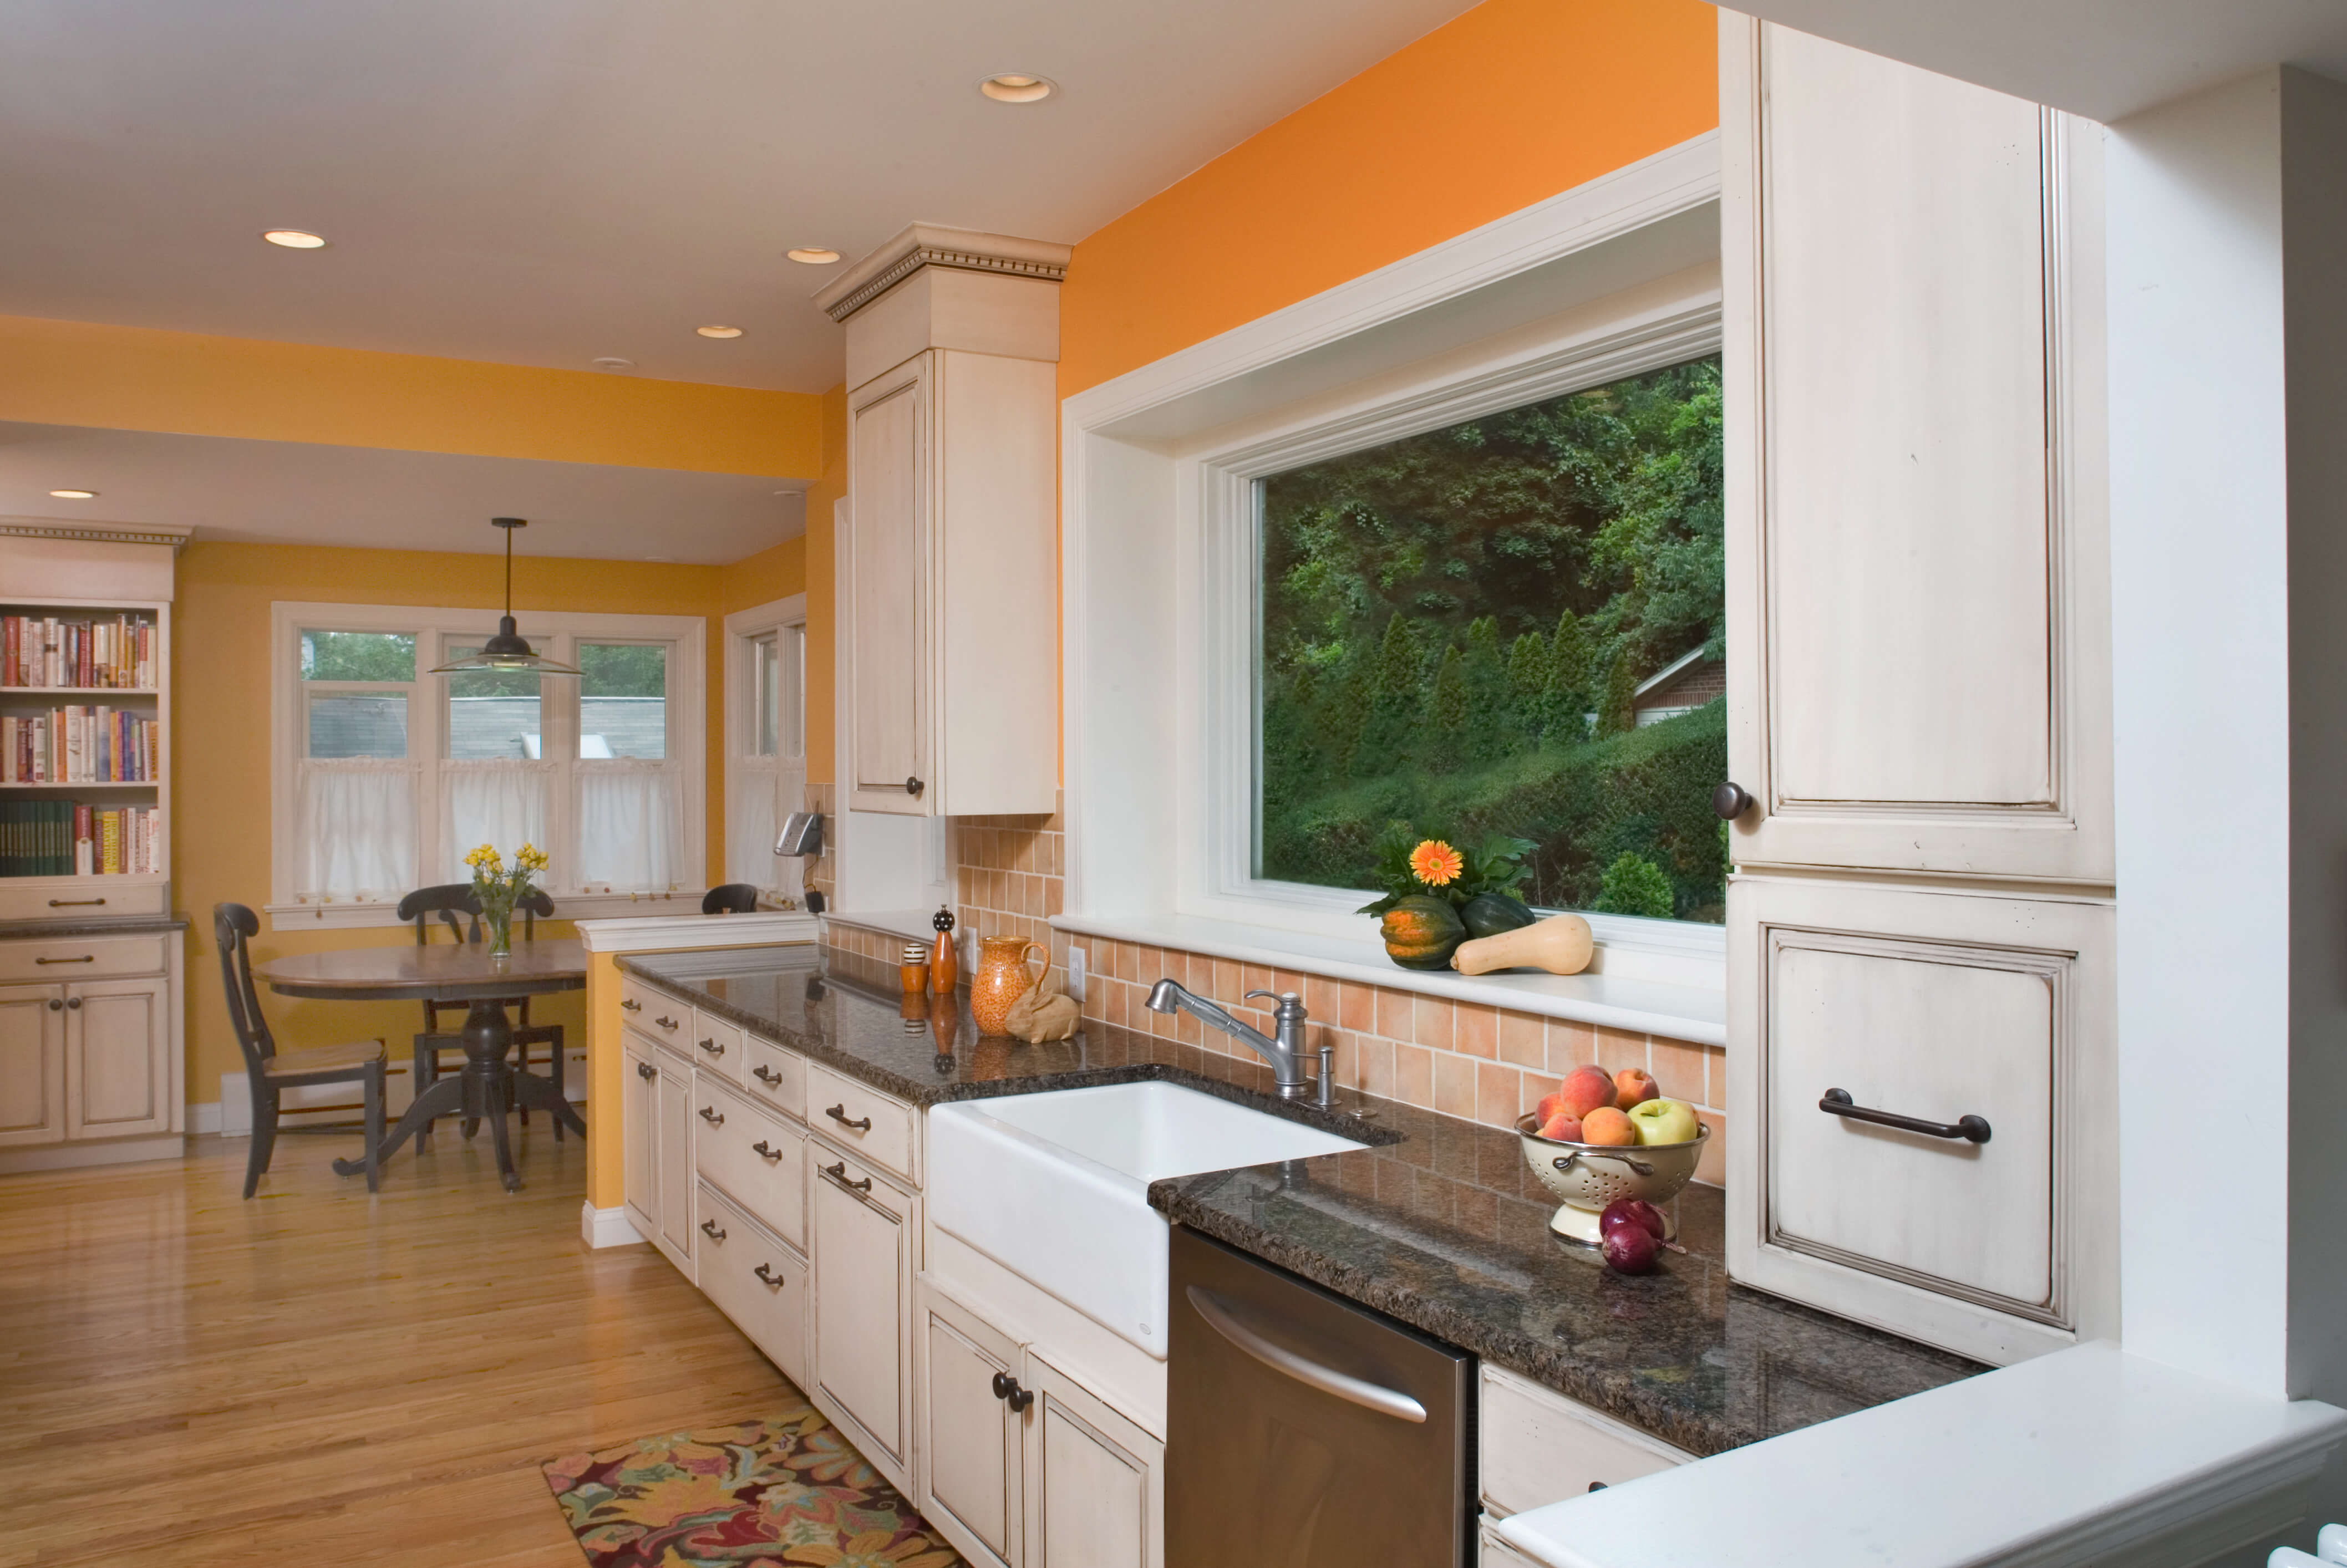 Elkins Park, PA Kitchen Remodel with Yellow Accents